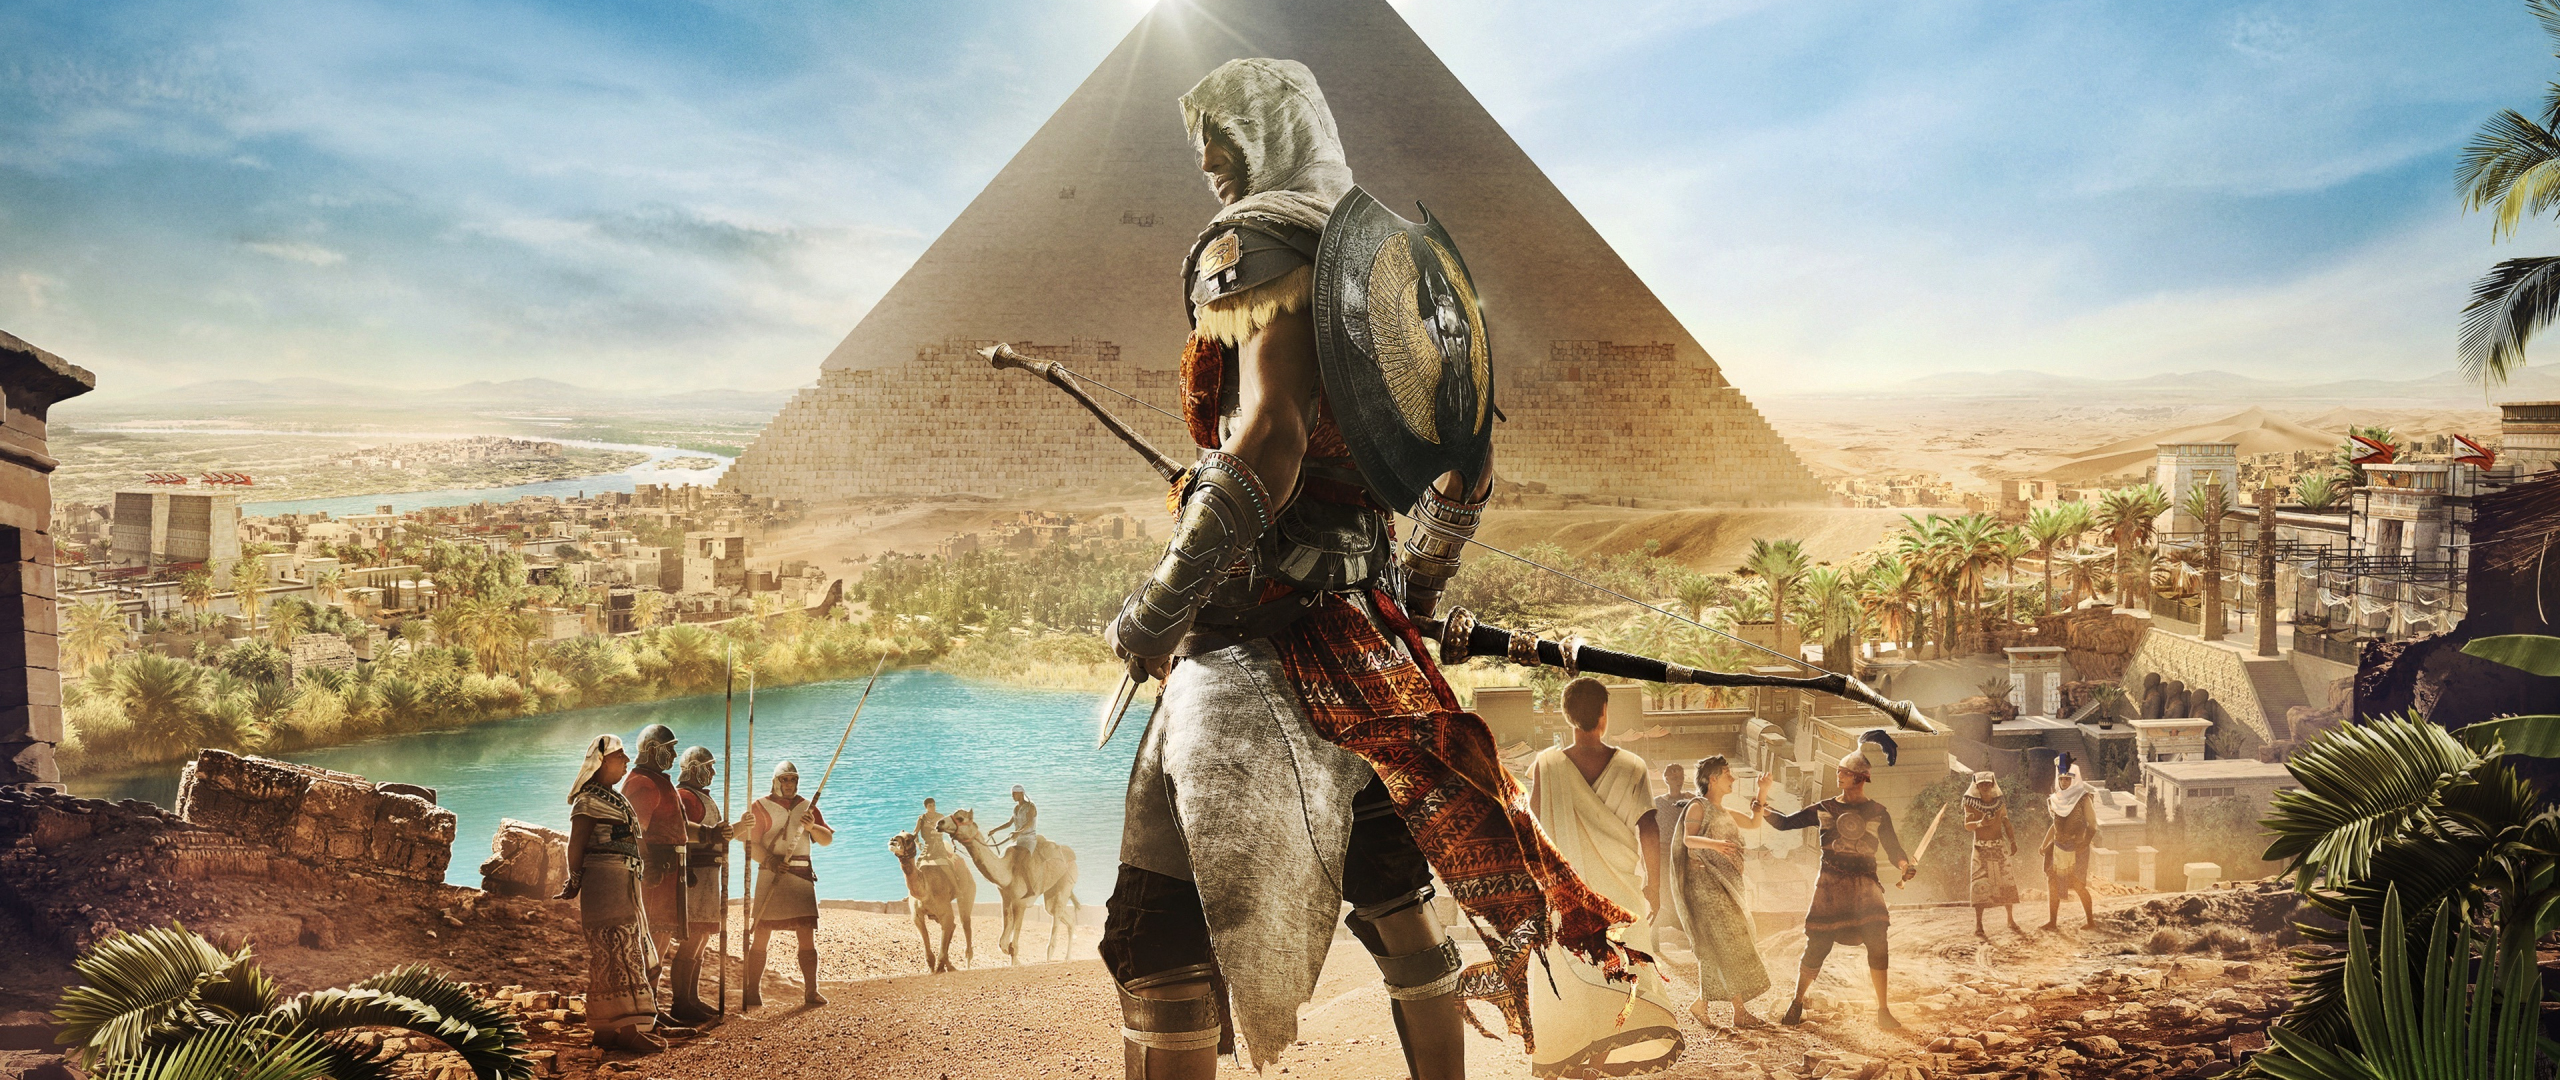 Download 2560x1080 Wallpaper Assassin S Creed Origins Egypt Pyramids Video Game Dual Wide